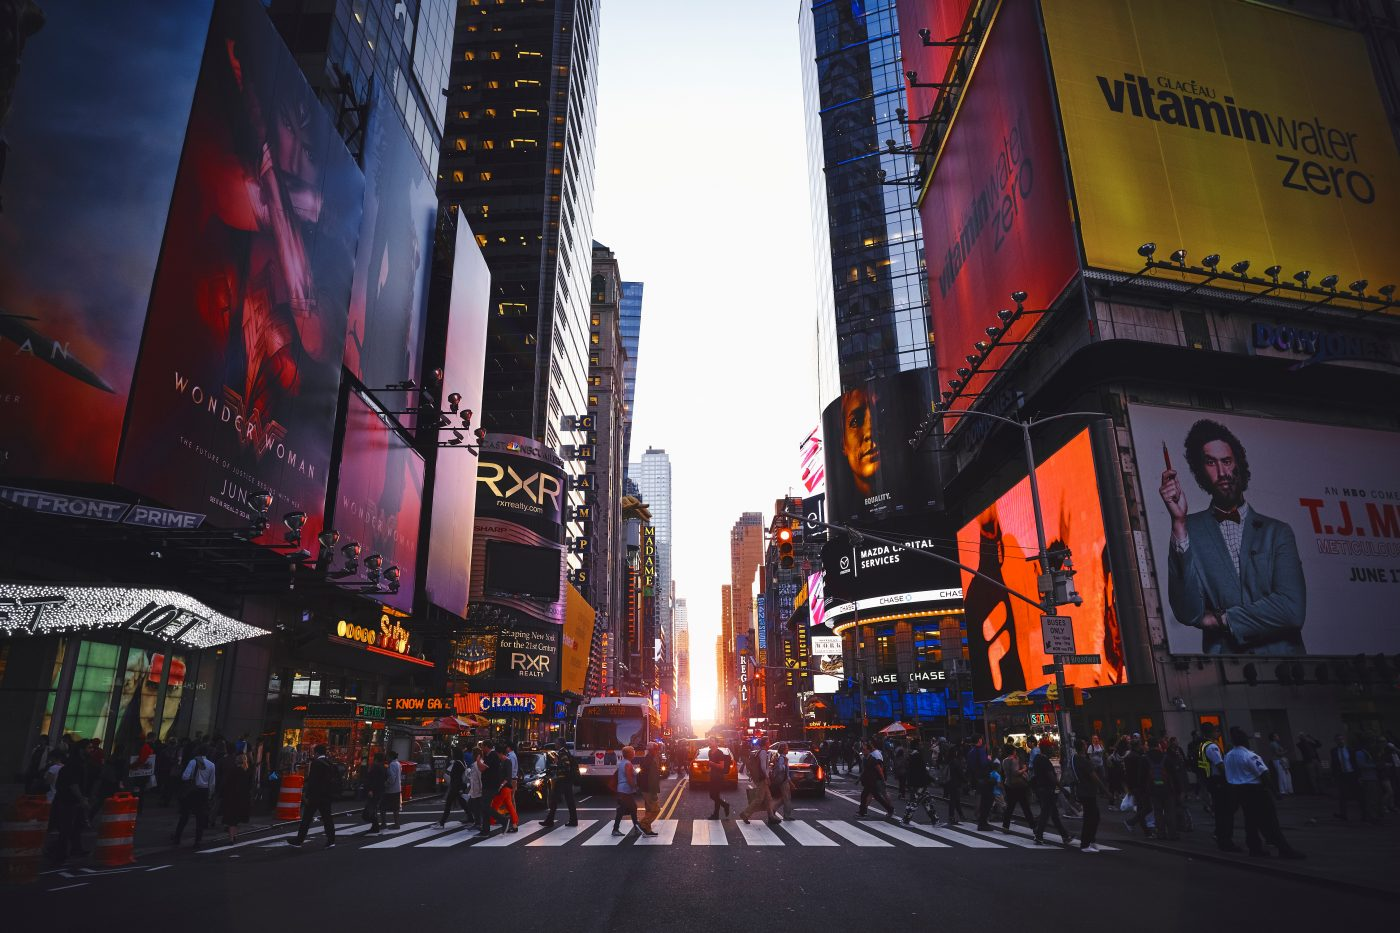 Intuitiva e mobile native, ecco la work experience di New York